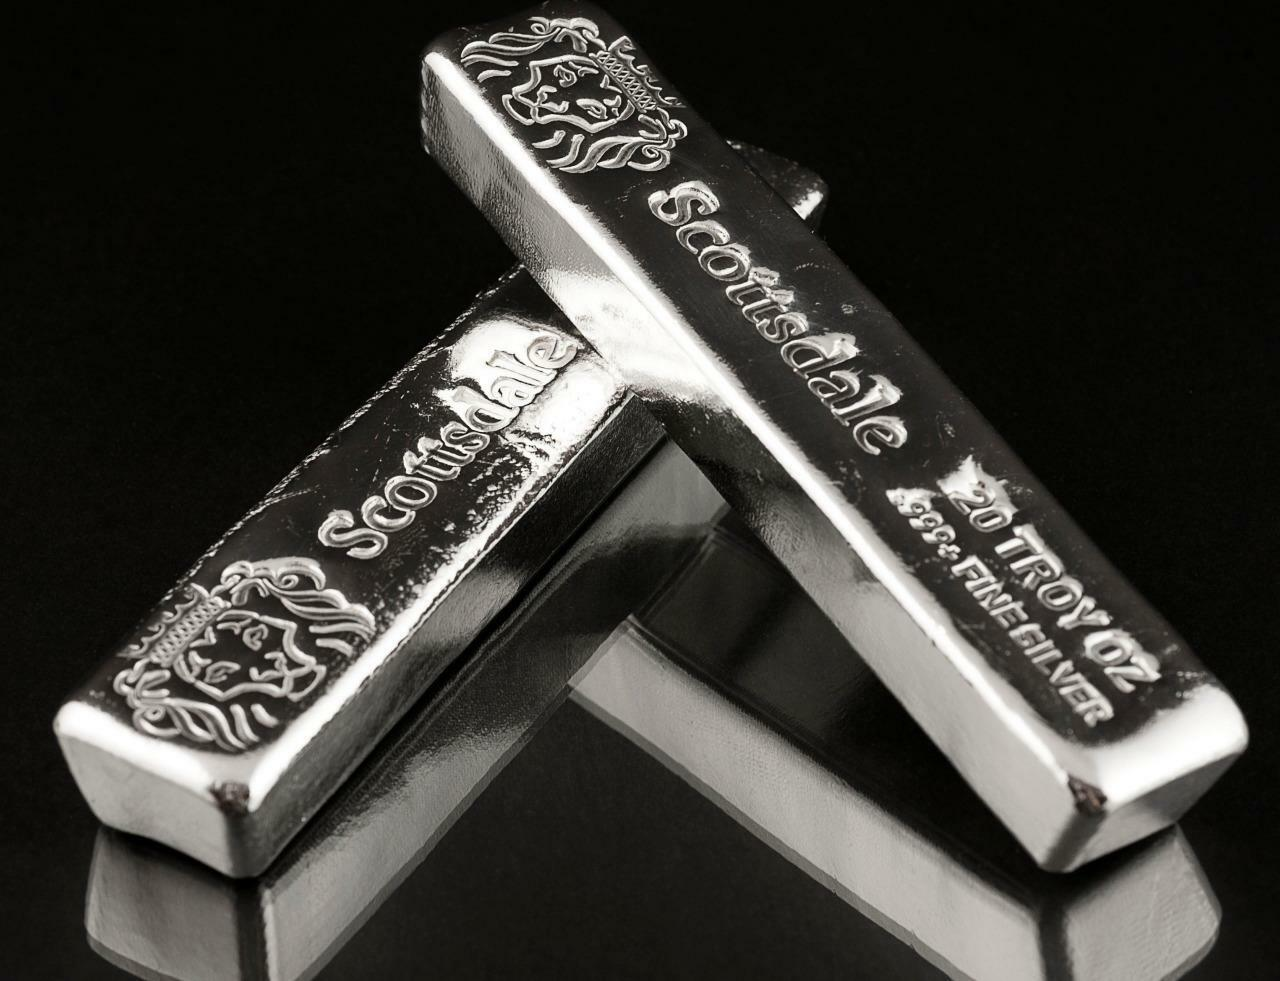 SPECIAL PRICE! 20 oz .999 Silver Bullion Long Cast Bar by Scottsdale Mint #A397